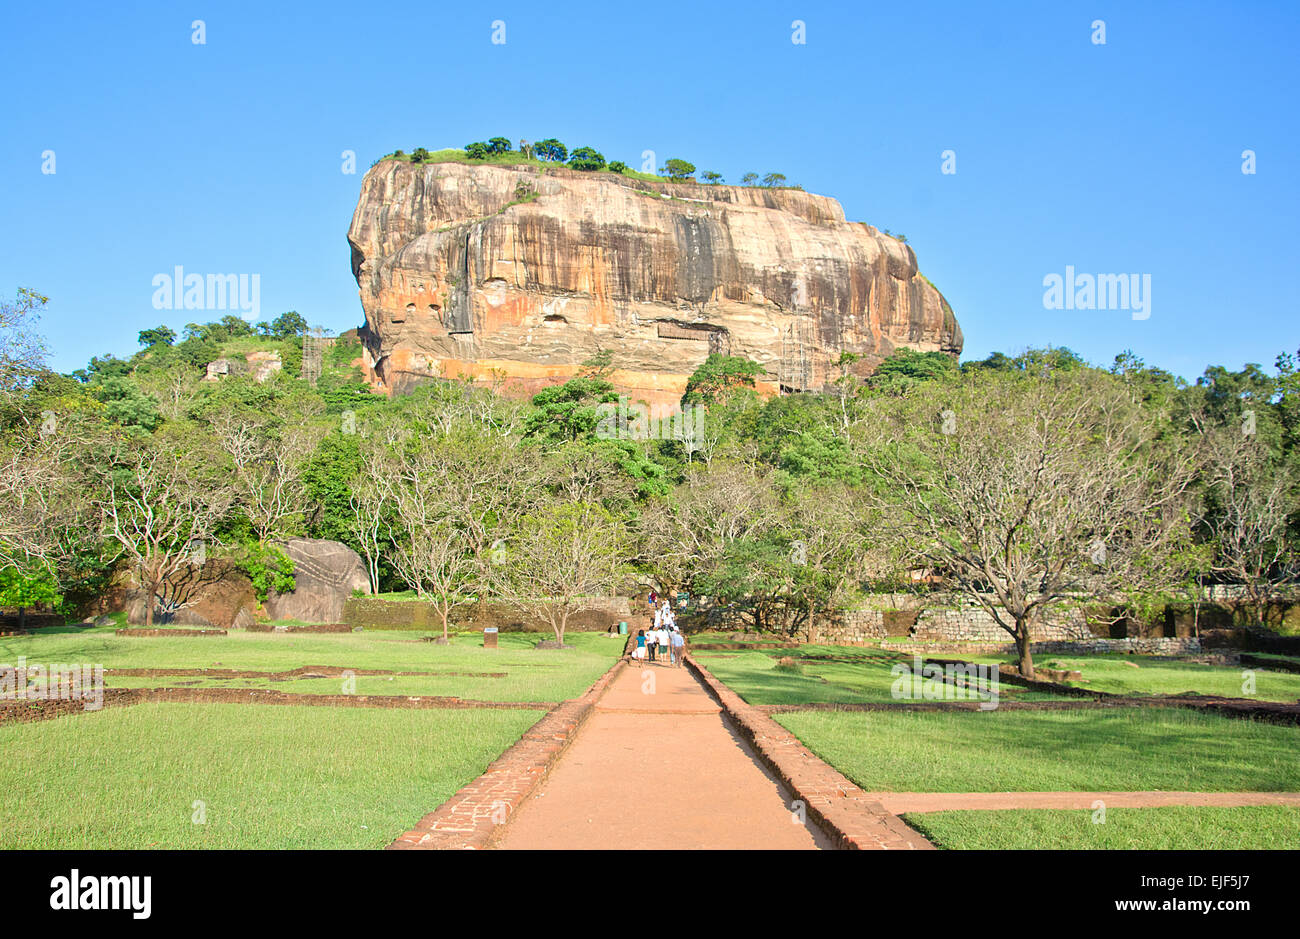 Sigiriya Rock Fortress 5th Centurys Ruined Castle That Is Unesco Listed As A World Heritage Site In Sri Lanka - Stock Image